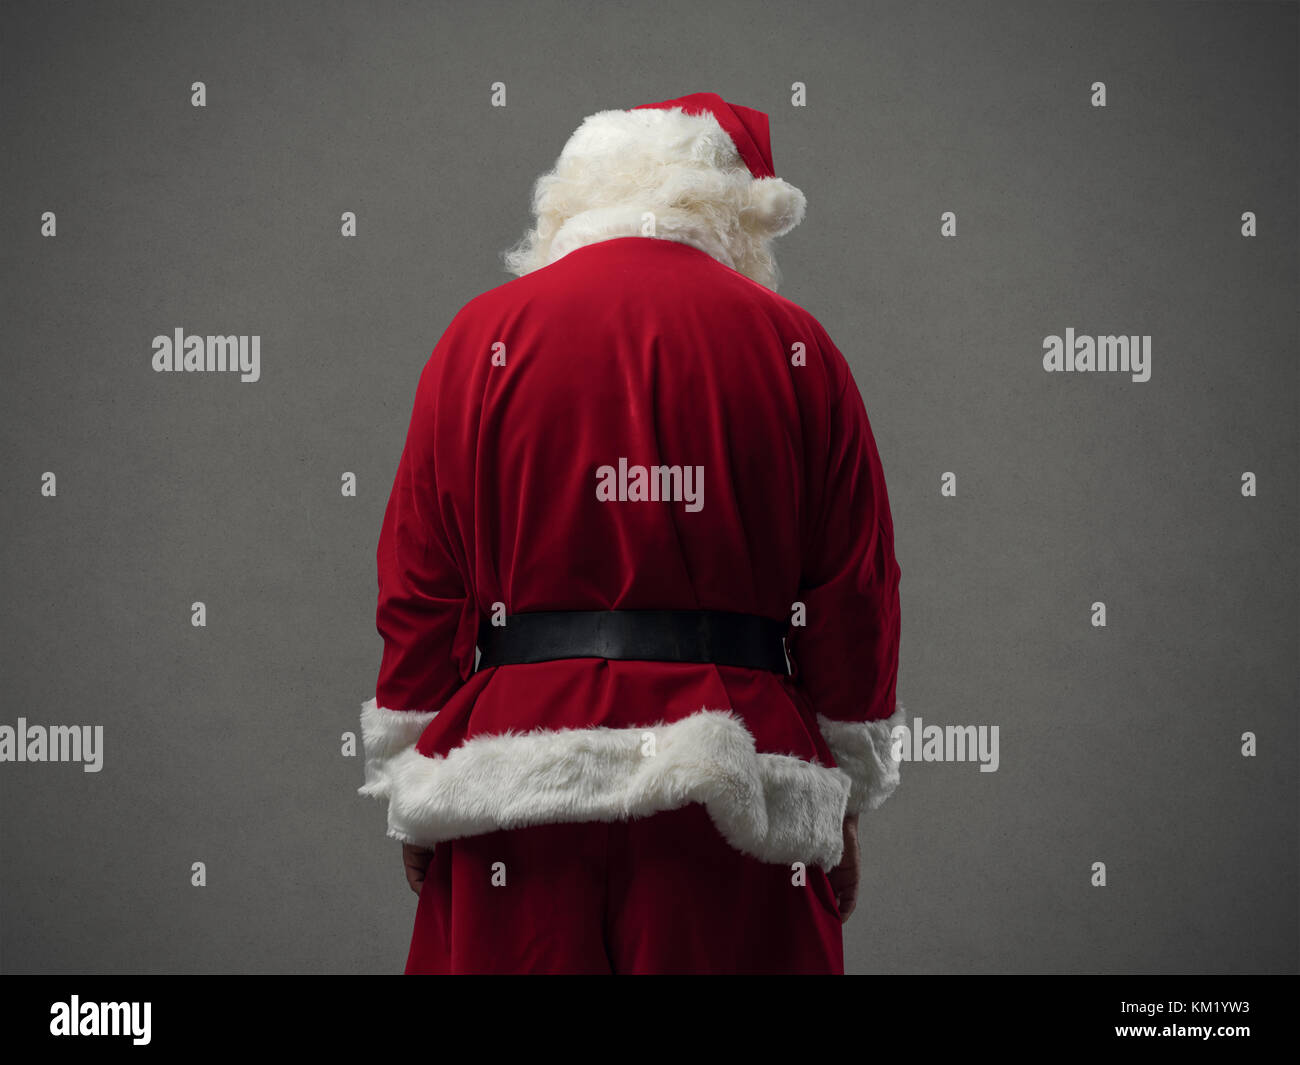 Sad Santa Claus looking down, back view, Christmas and celebrations concept - Stock Image